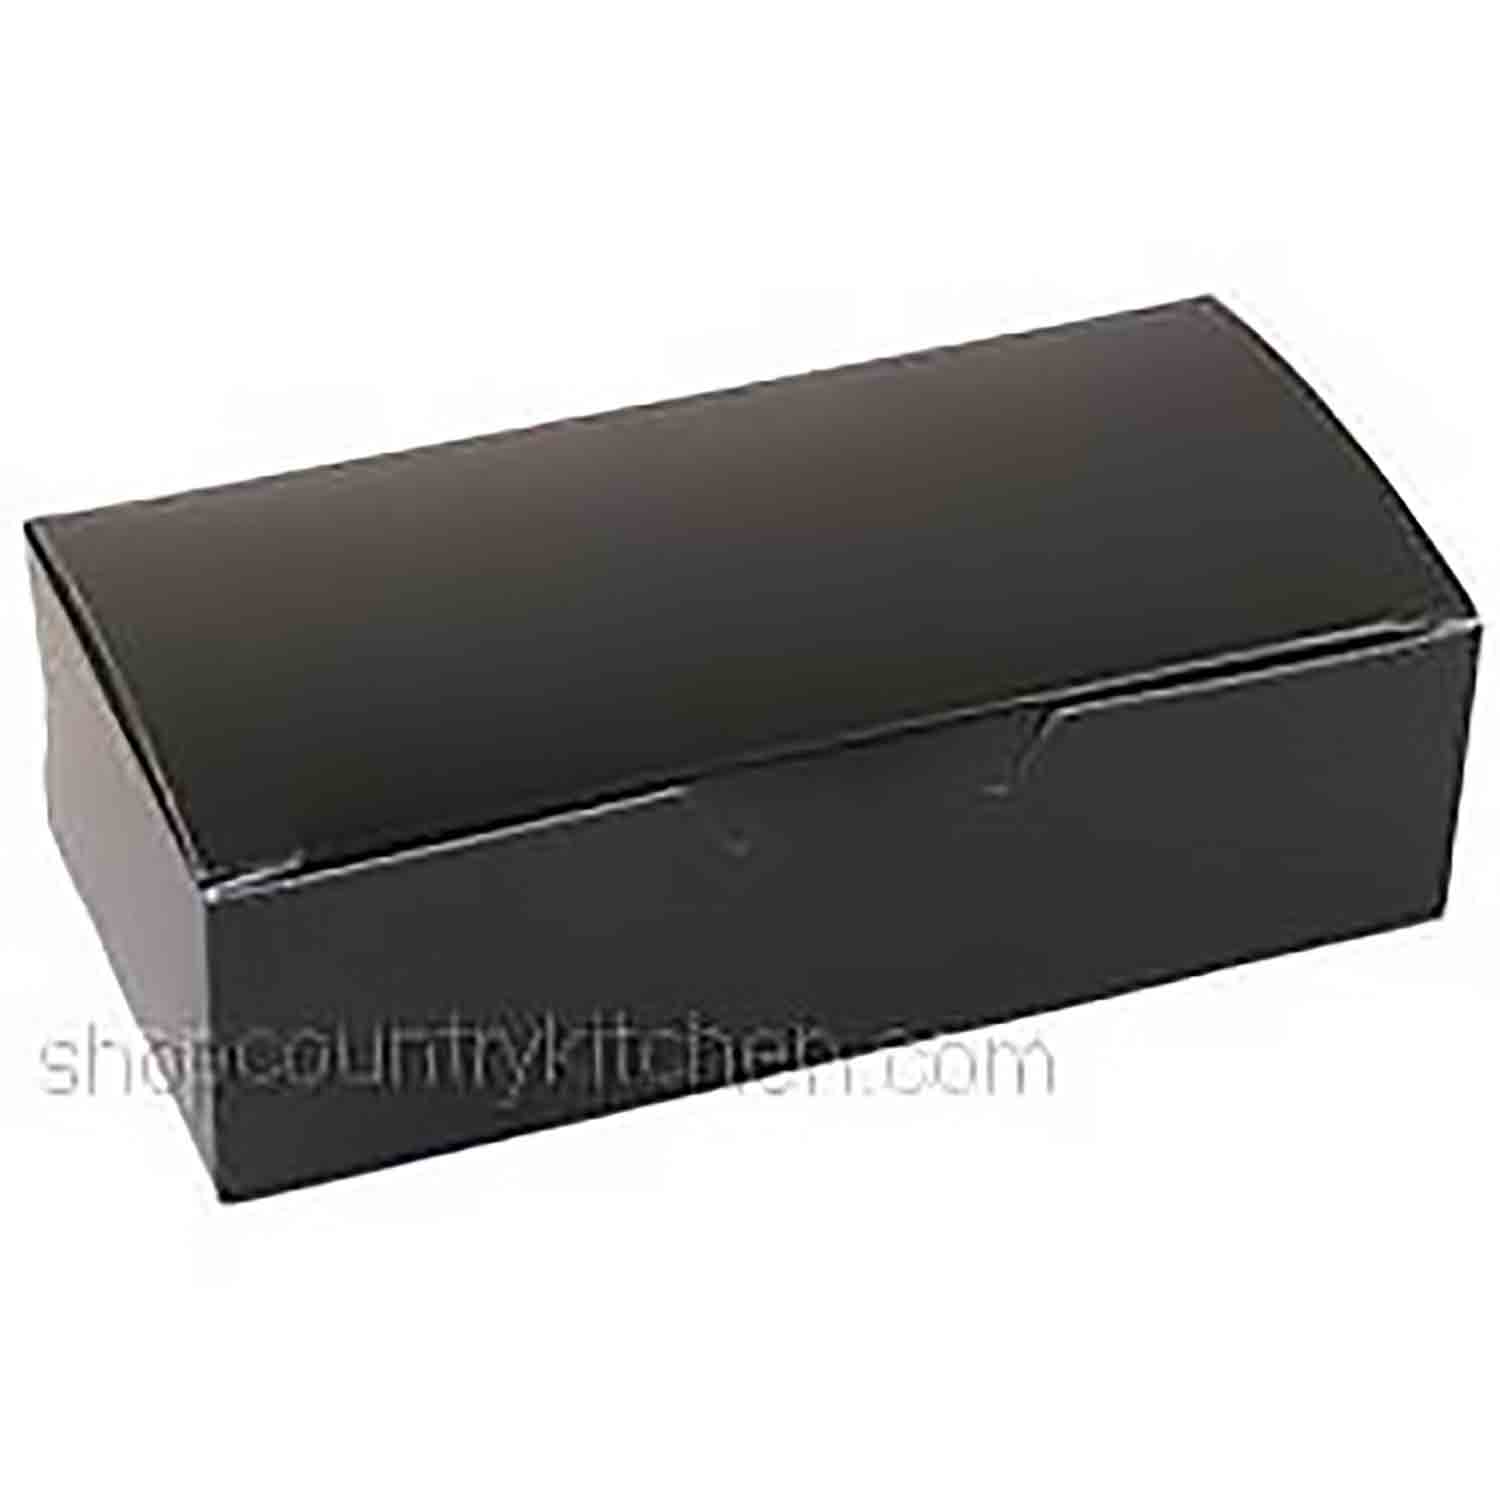 1 lb. Black Candy Box